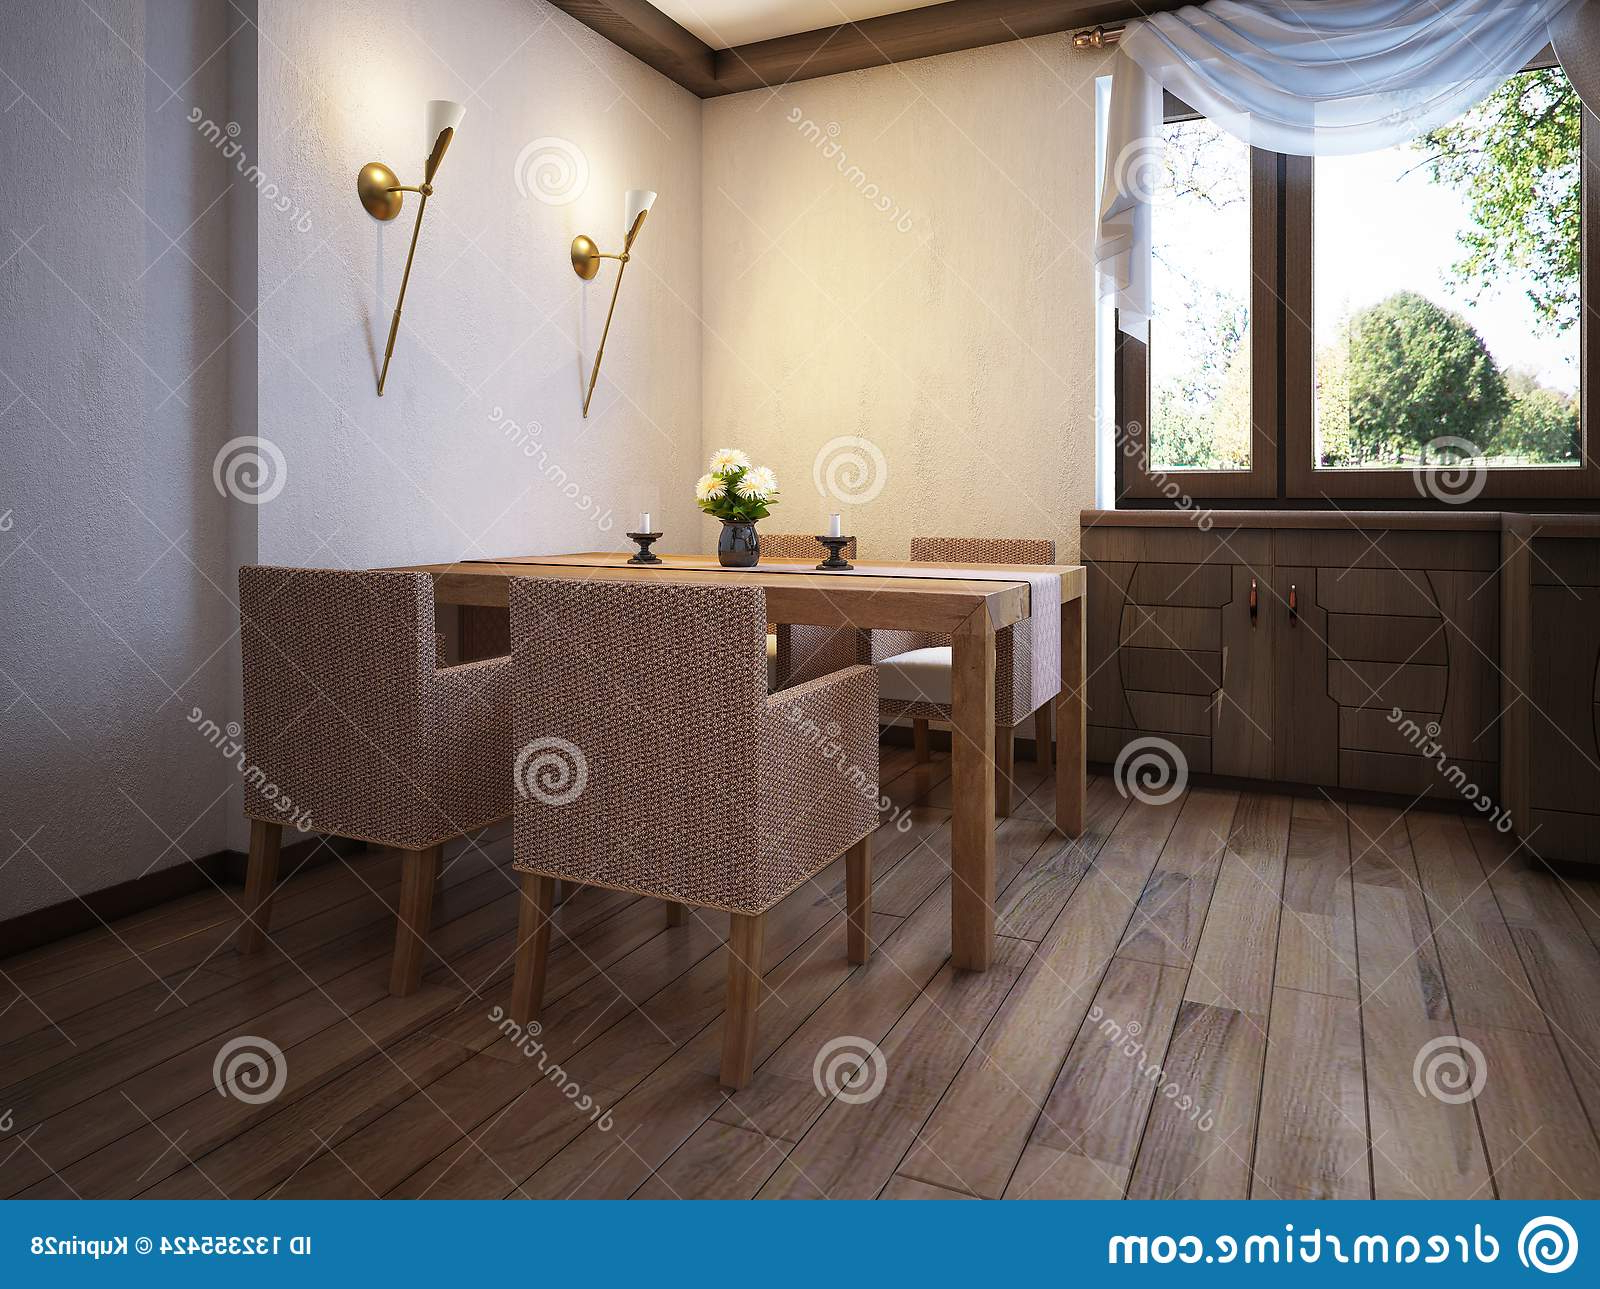 Kitchen Rustic Style With A Dining Table And Wooden With Widely Used Large Rustic Look Dining Tables (View 11 of 30)